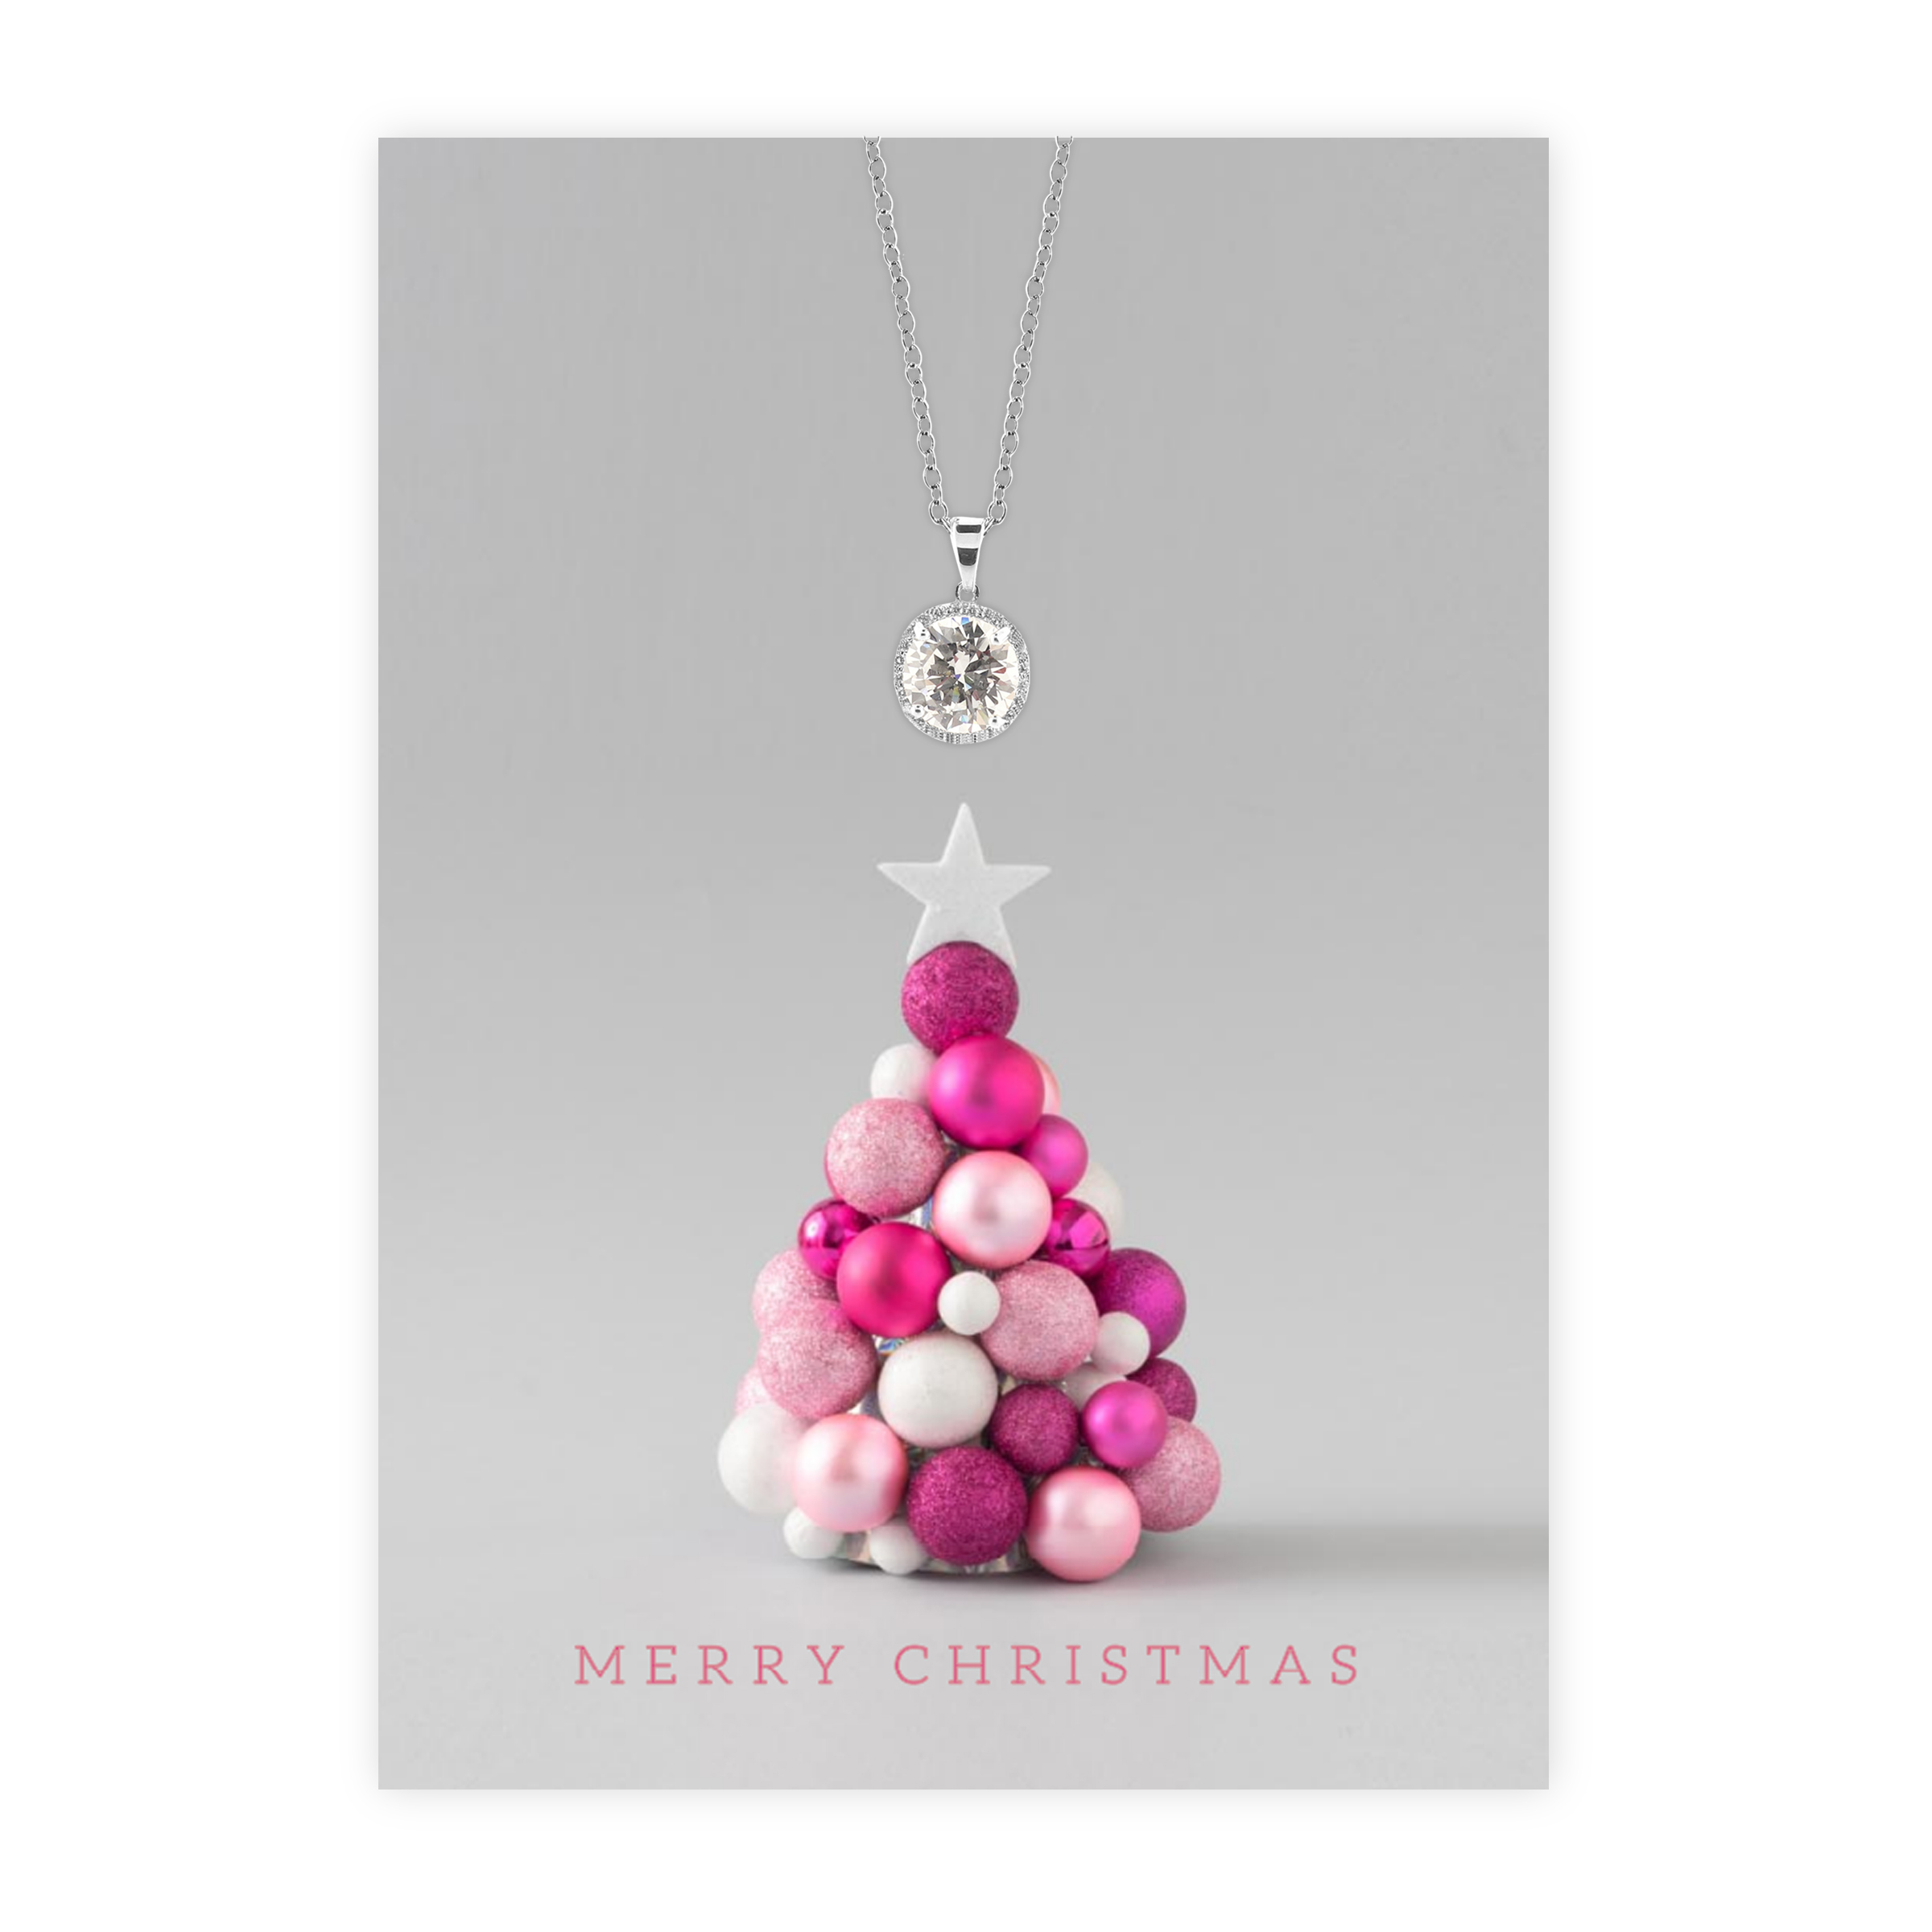 Christmas Card with Silver Solitaire N/L